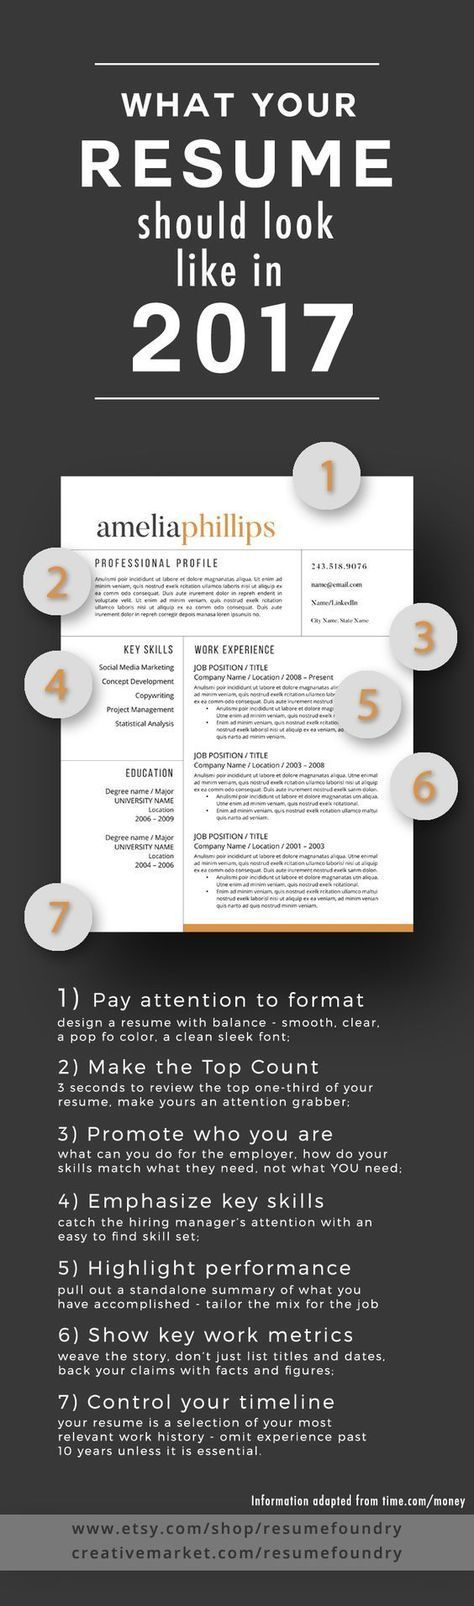 Best 25+ Resume skills ideas on Pinterest Resume, Job search and - skills sets for resume